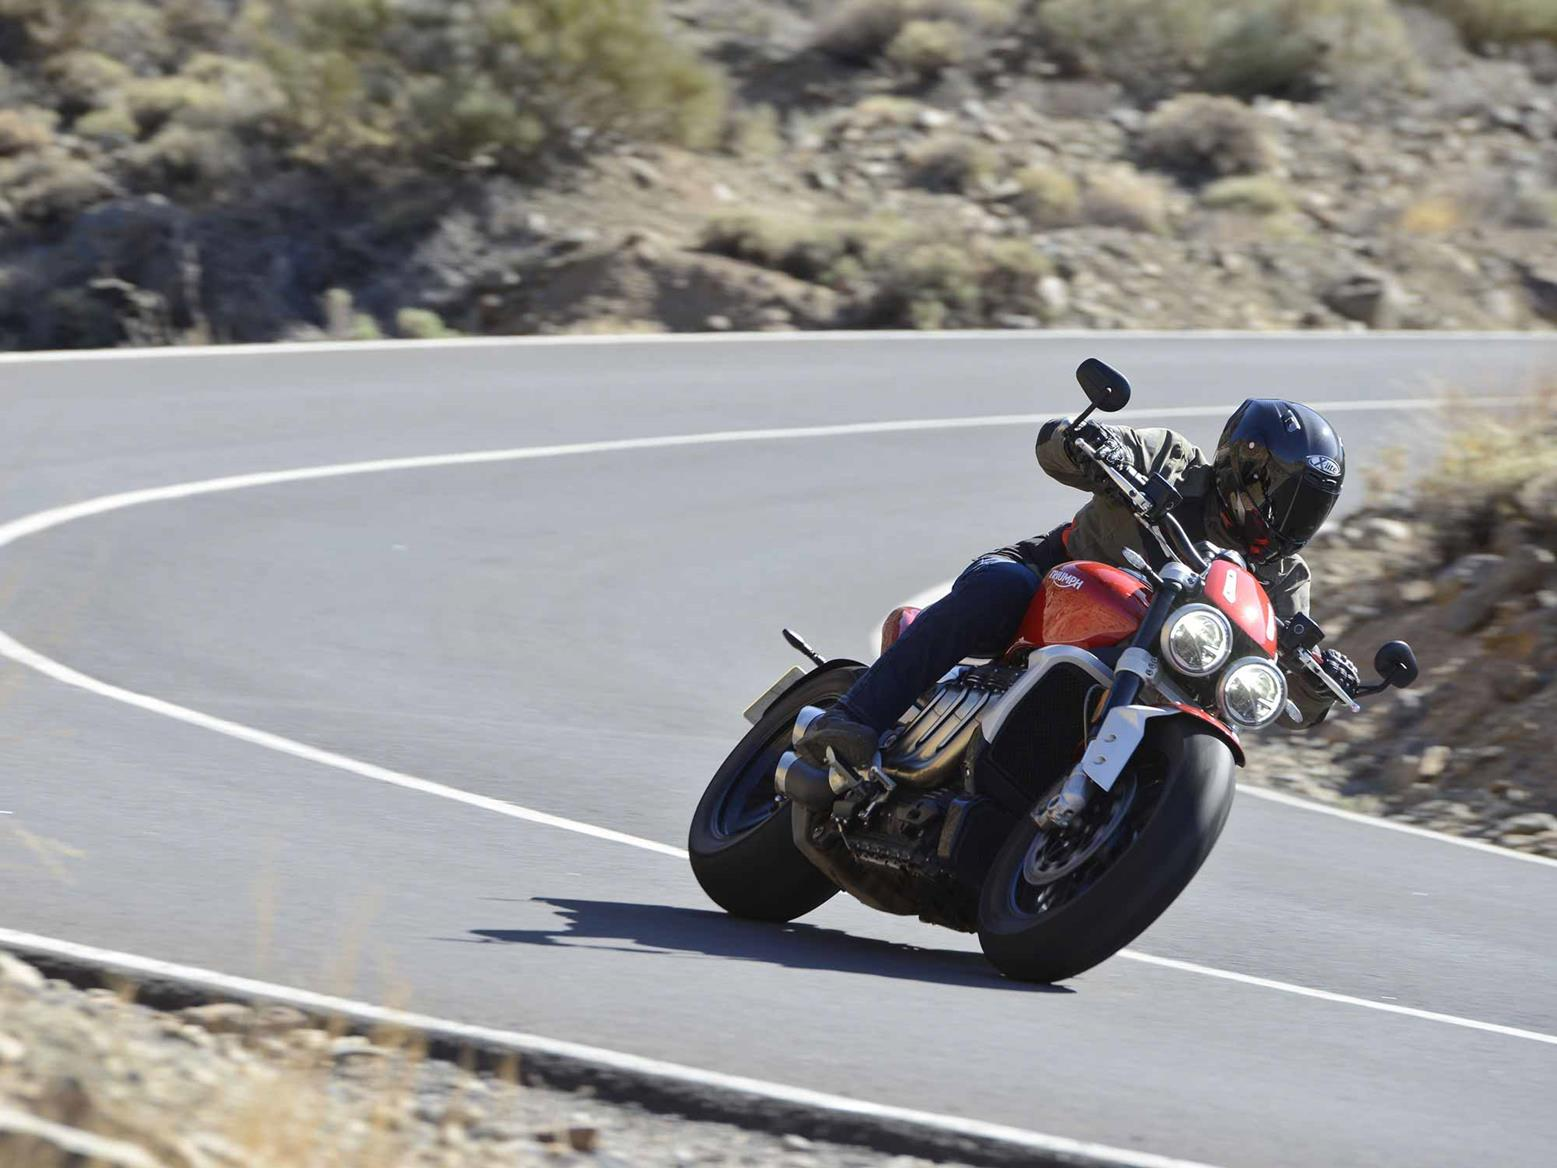 Turning on the Triumph Rocket 3